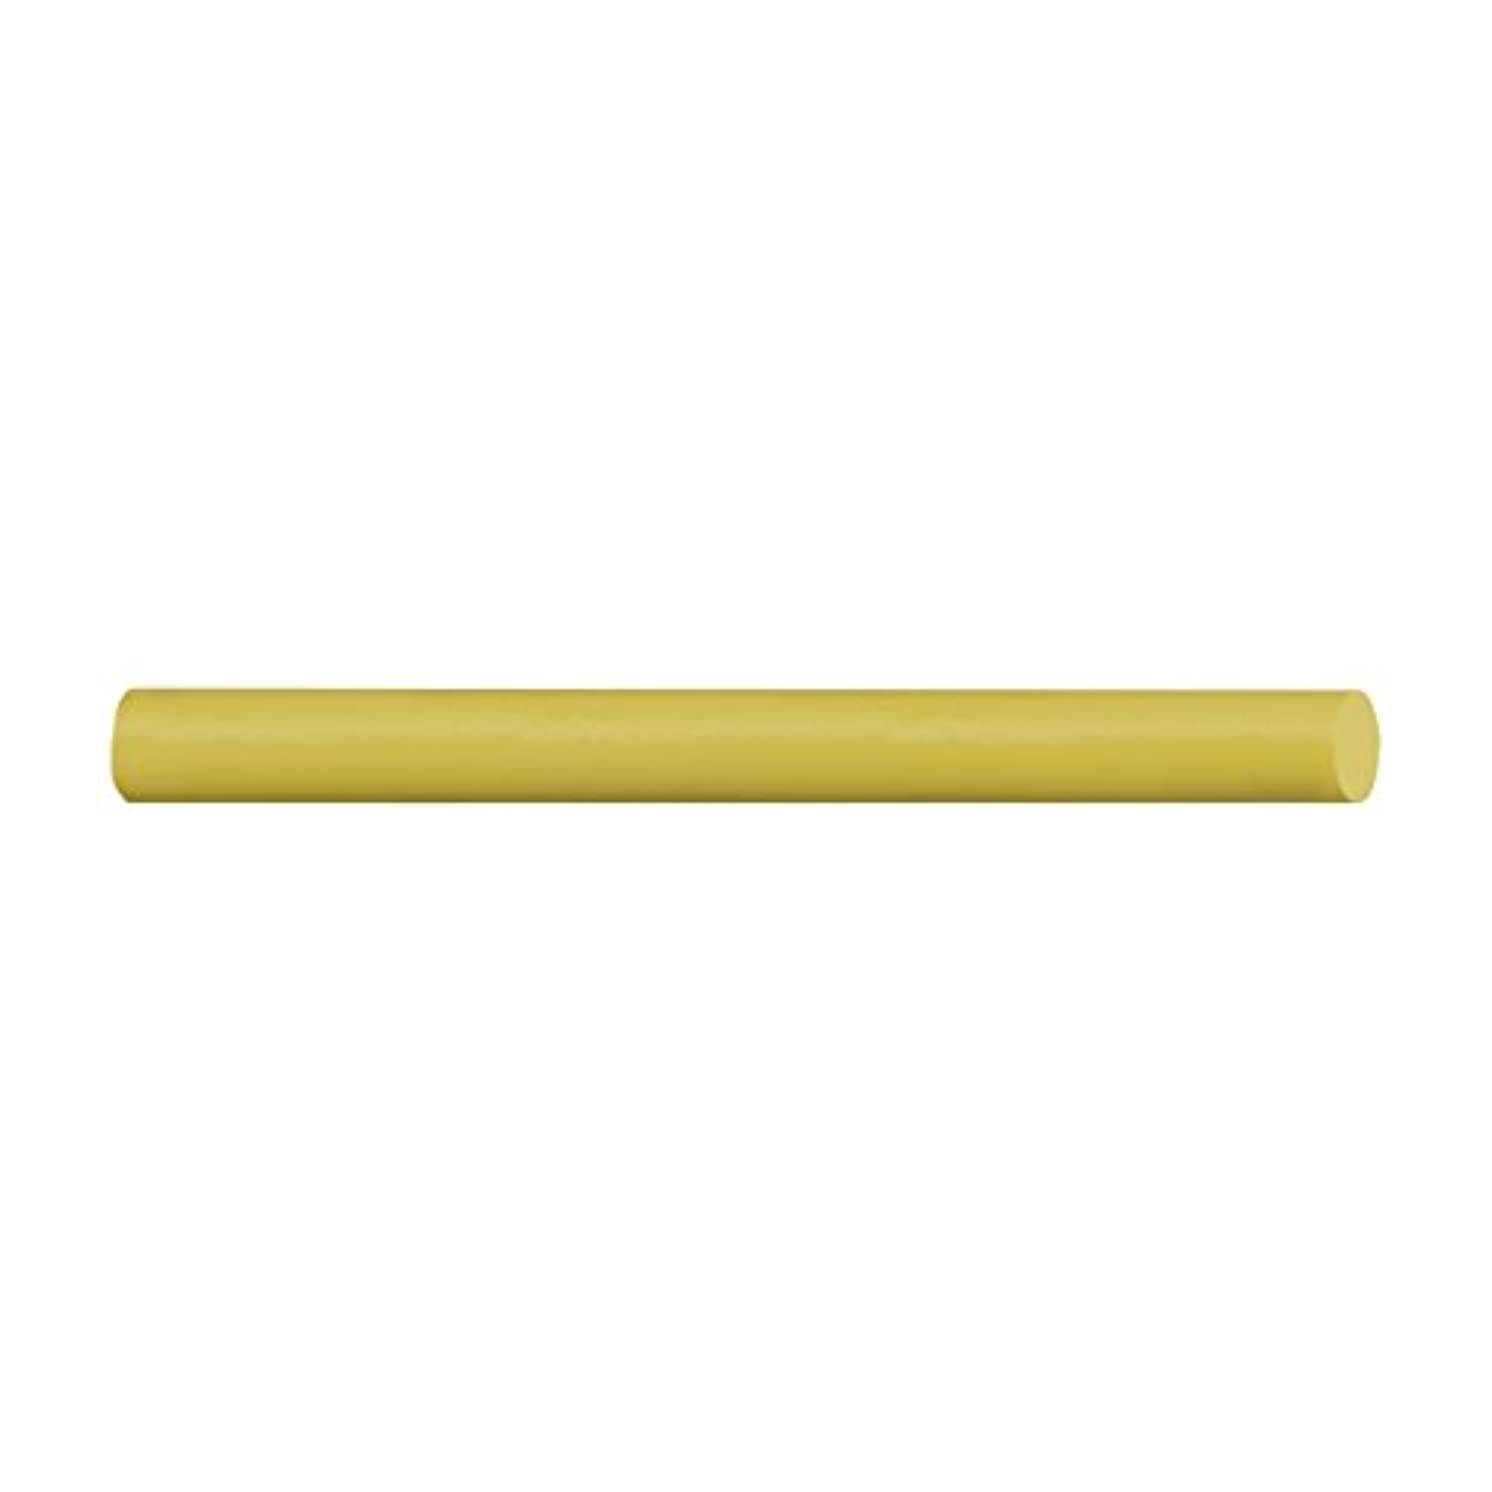 Markal 82521 X-5 Paintstik (150 F- 900 F), Yellow (Pack of 144)